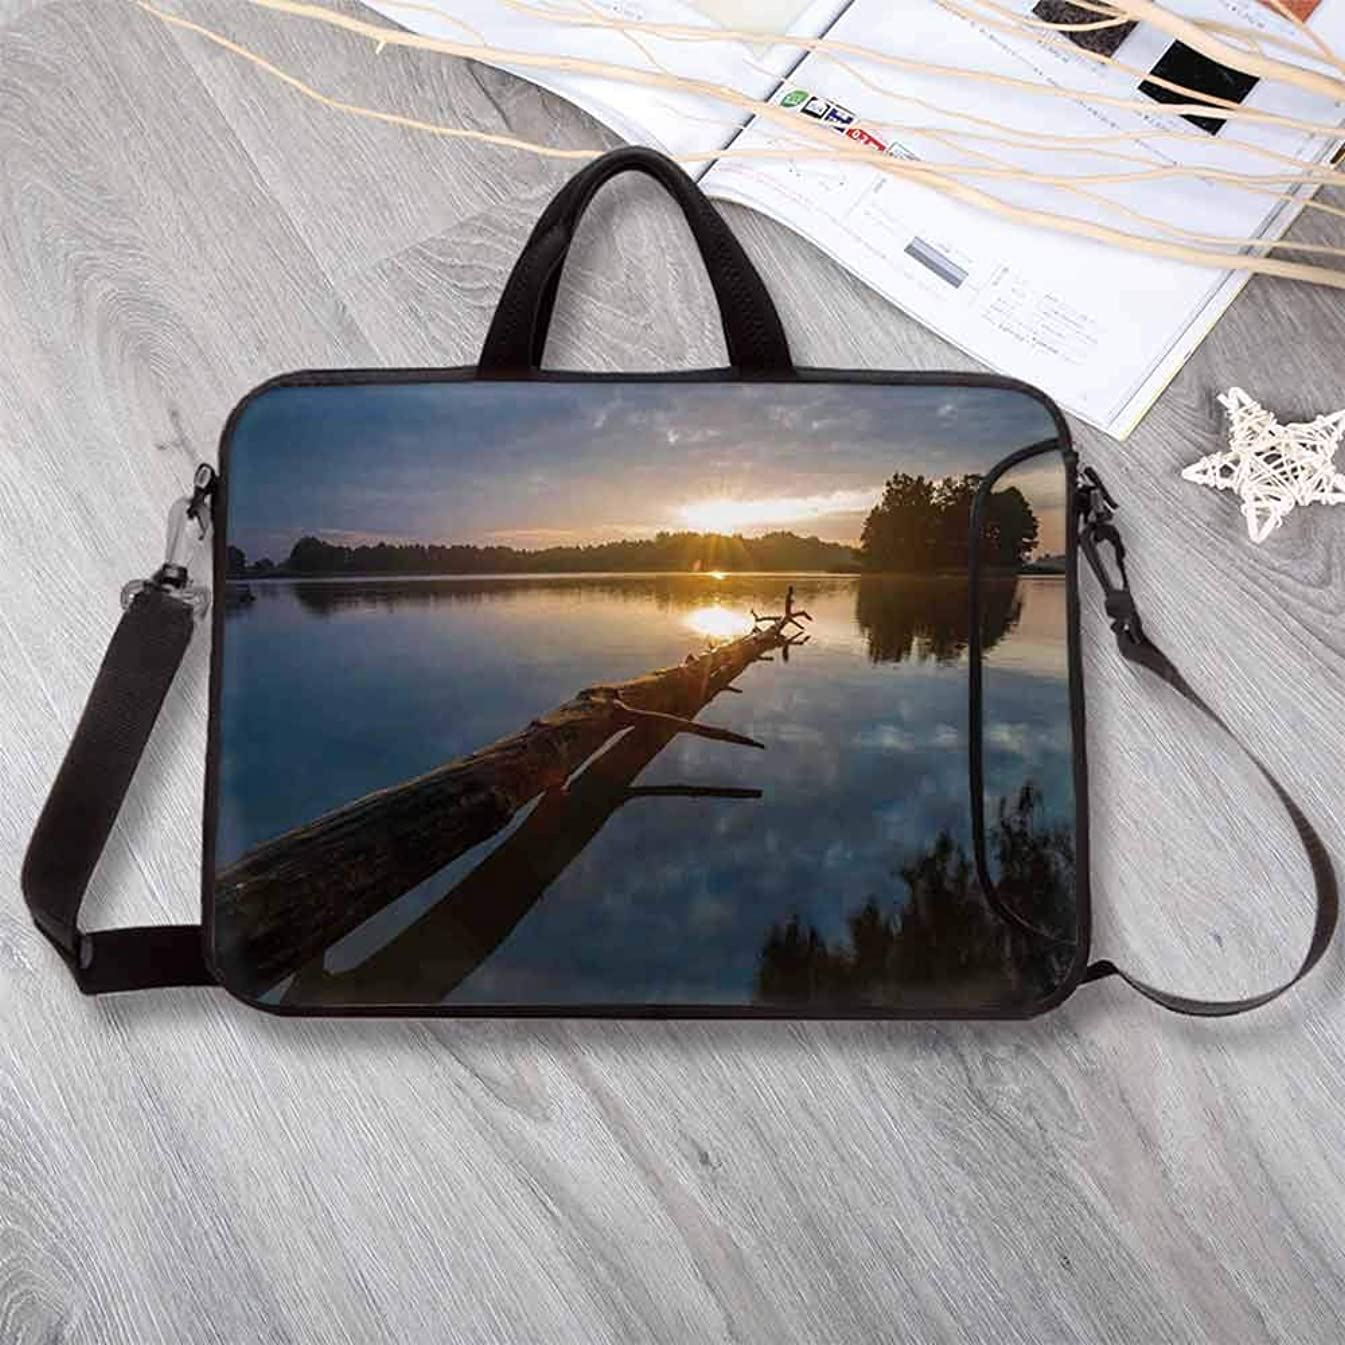 """Driftwood Decor Lightweight Neoprene Laptop Bag,Natural Theme Landscape of Driftwood and Lake in Poland a Sunny Day Laptop Bag for Laptop Tablet PC,12.6""""L x 9.4""""W x 0.8""""H"""